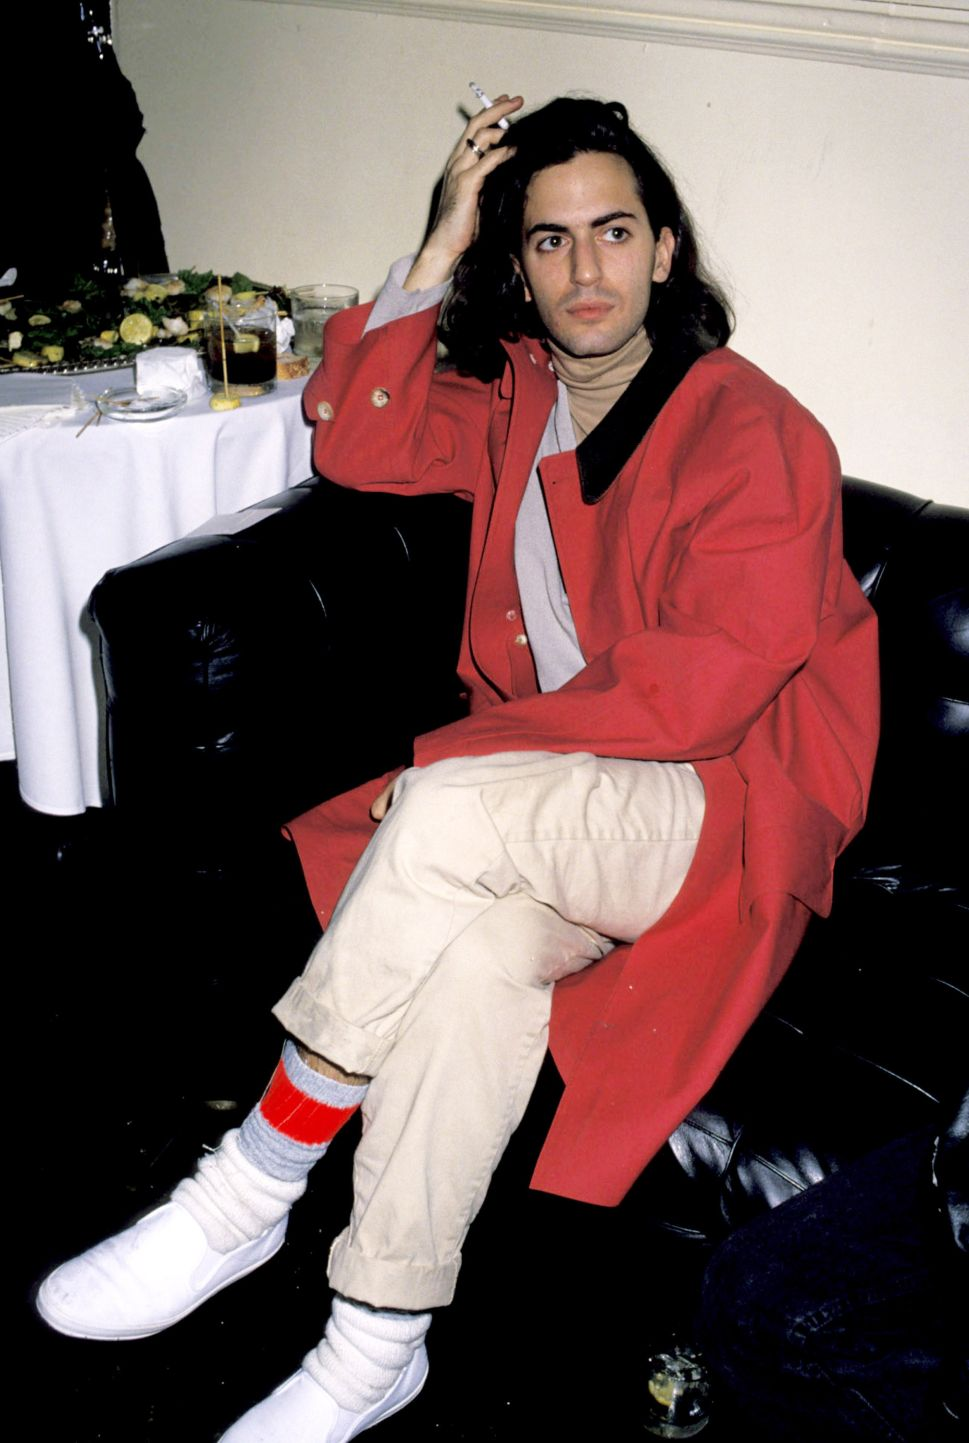 Marc Jacobs Resurrected the Grunge Collection That Got Him Fired—And the Timing Couldn't Be Better